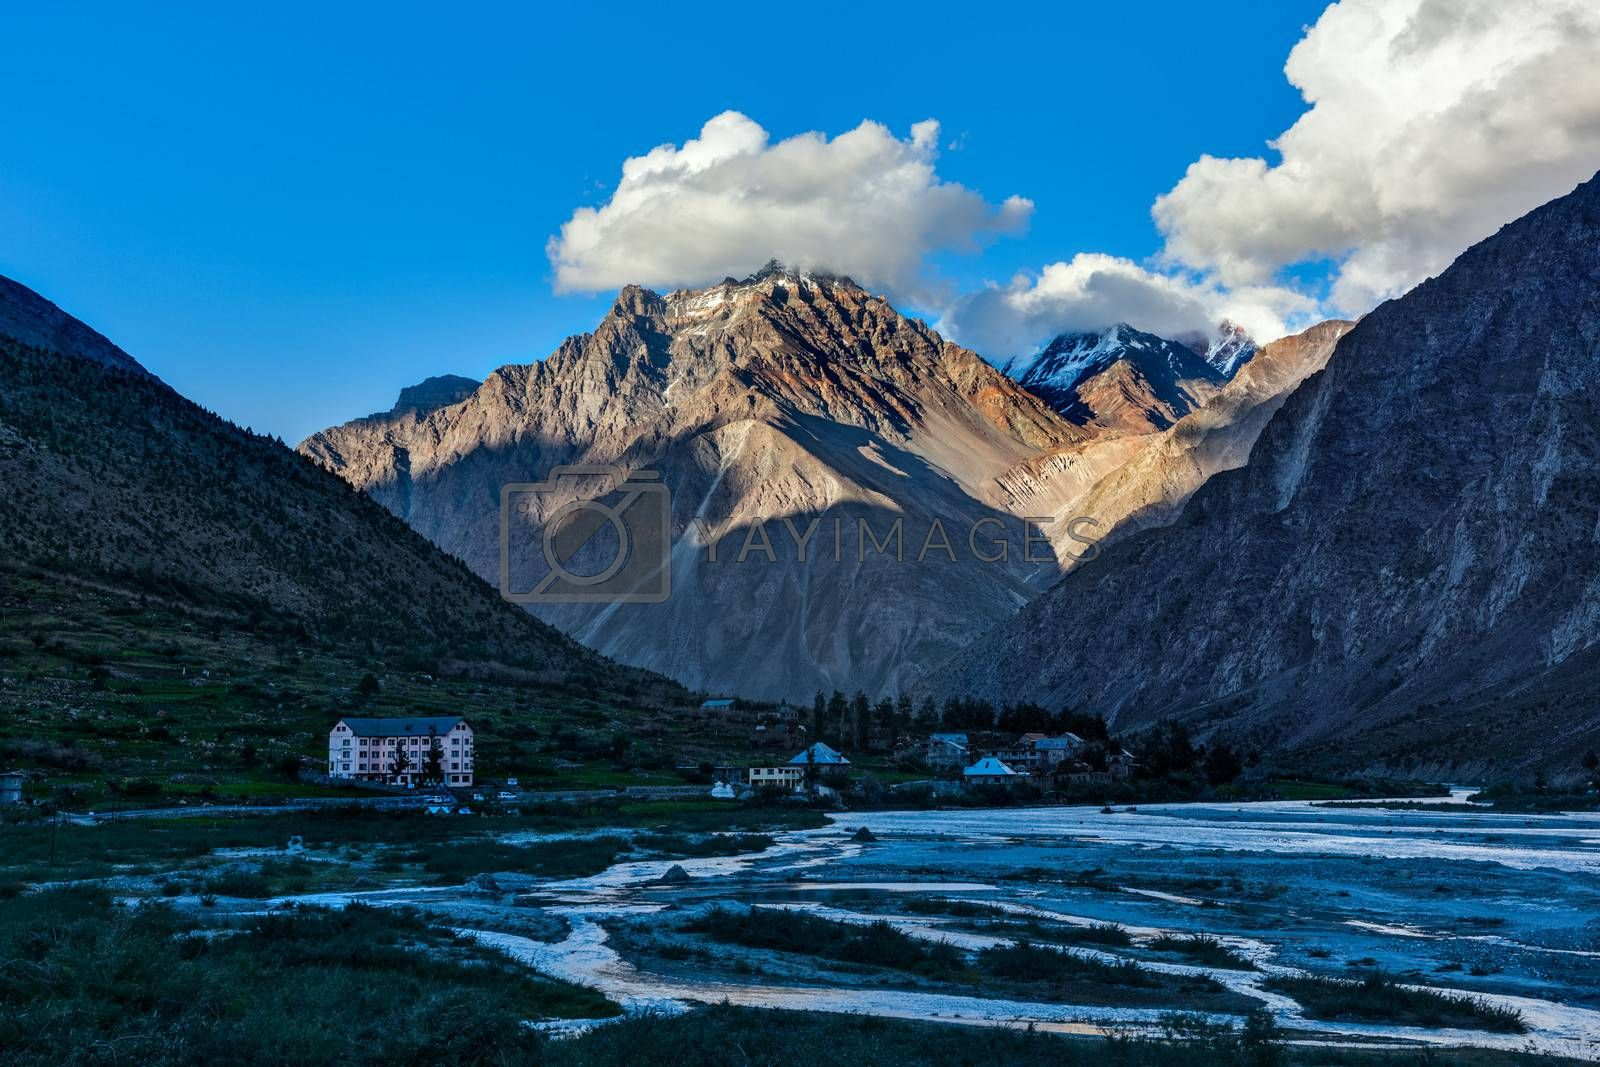 Royalty free image of Lahaul valley in Himalayas on sunset by dimol